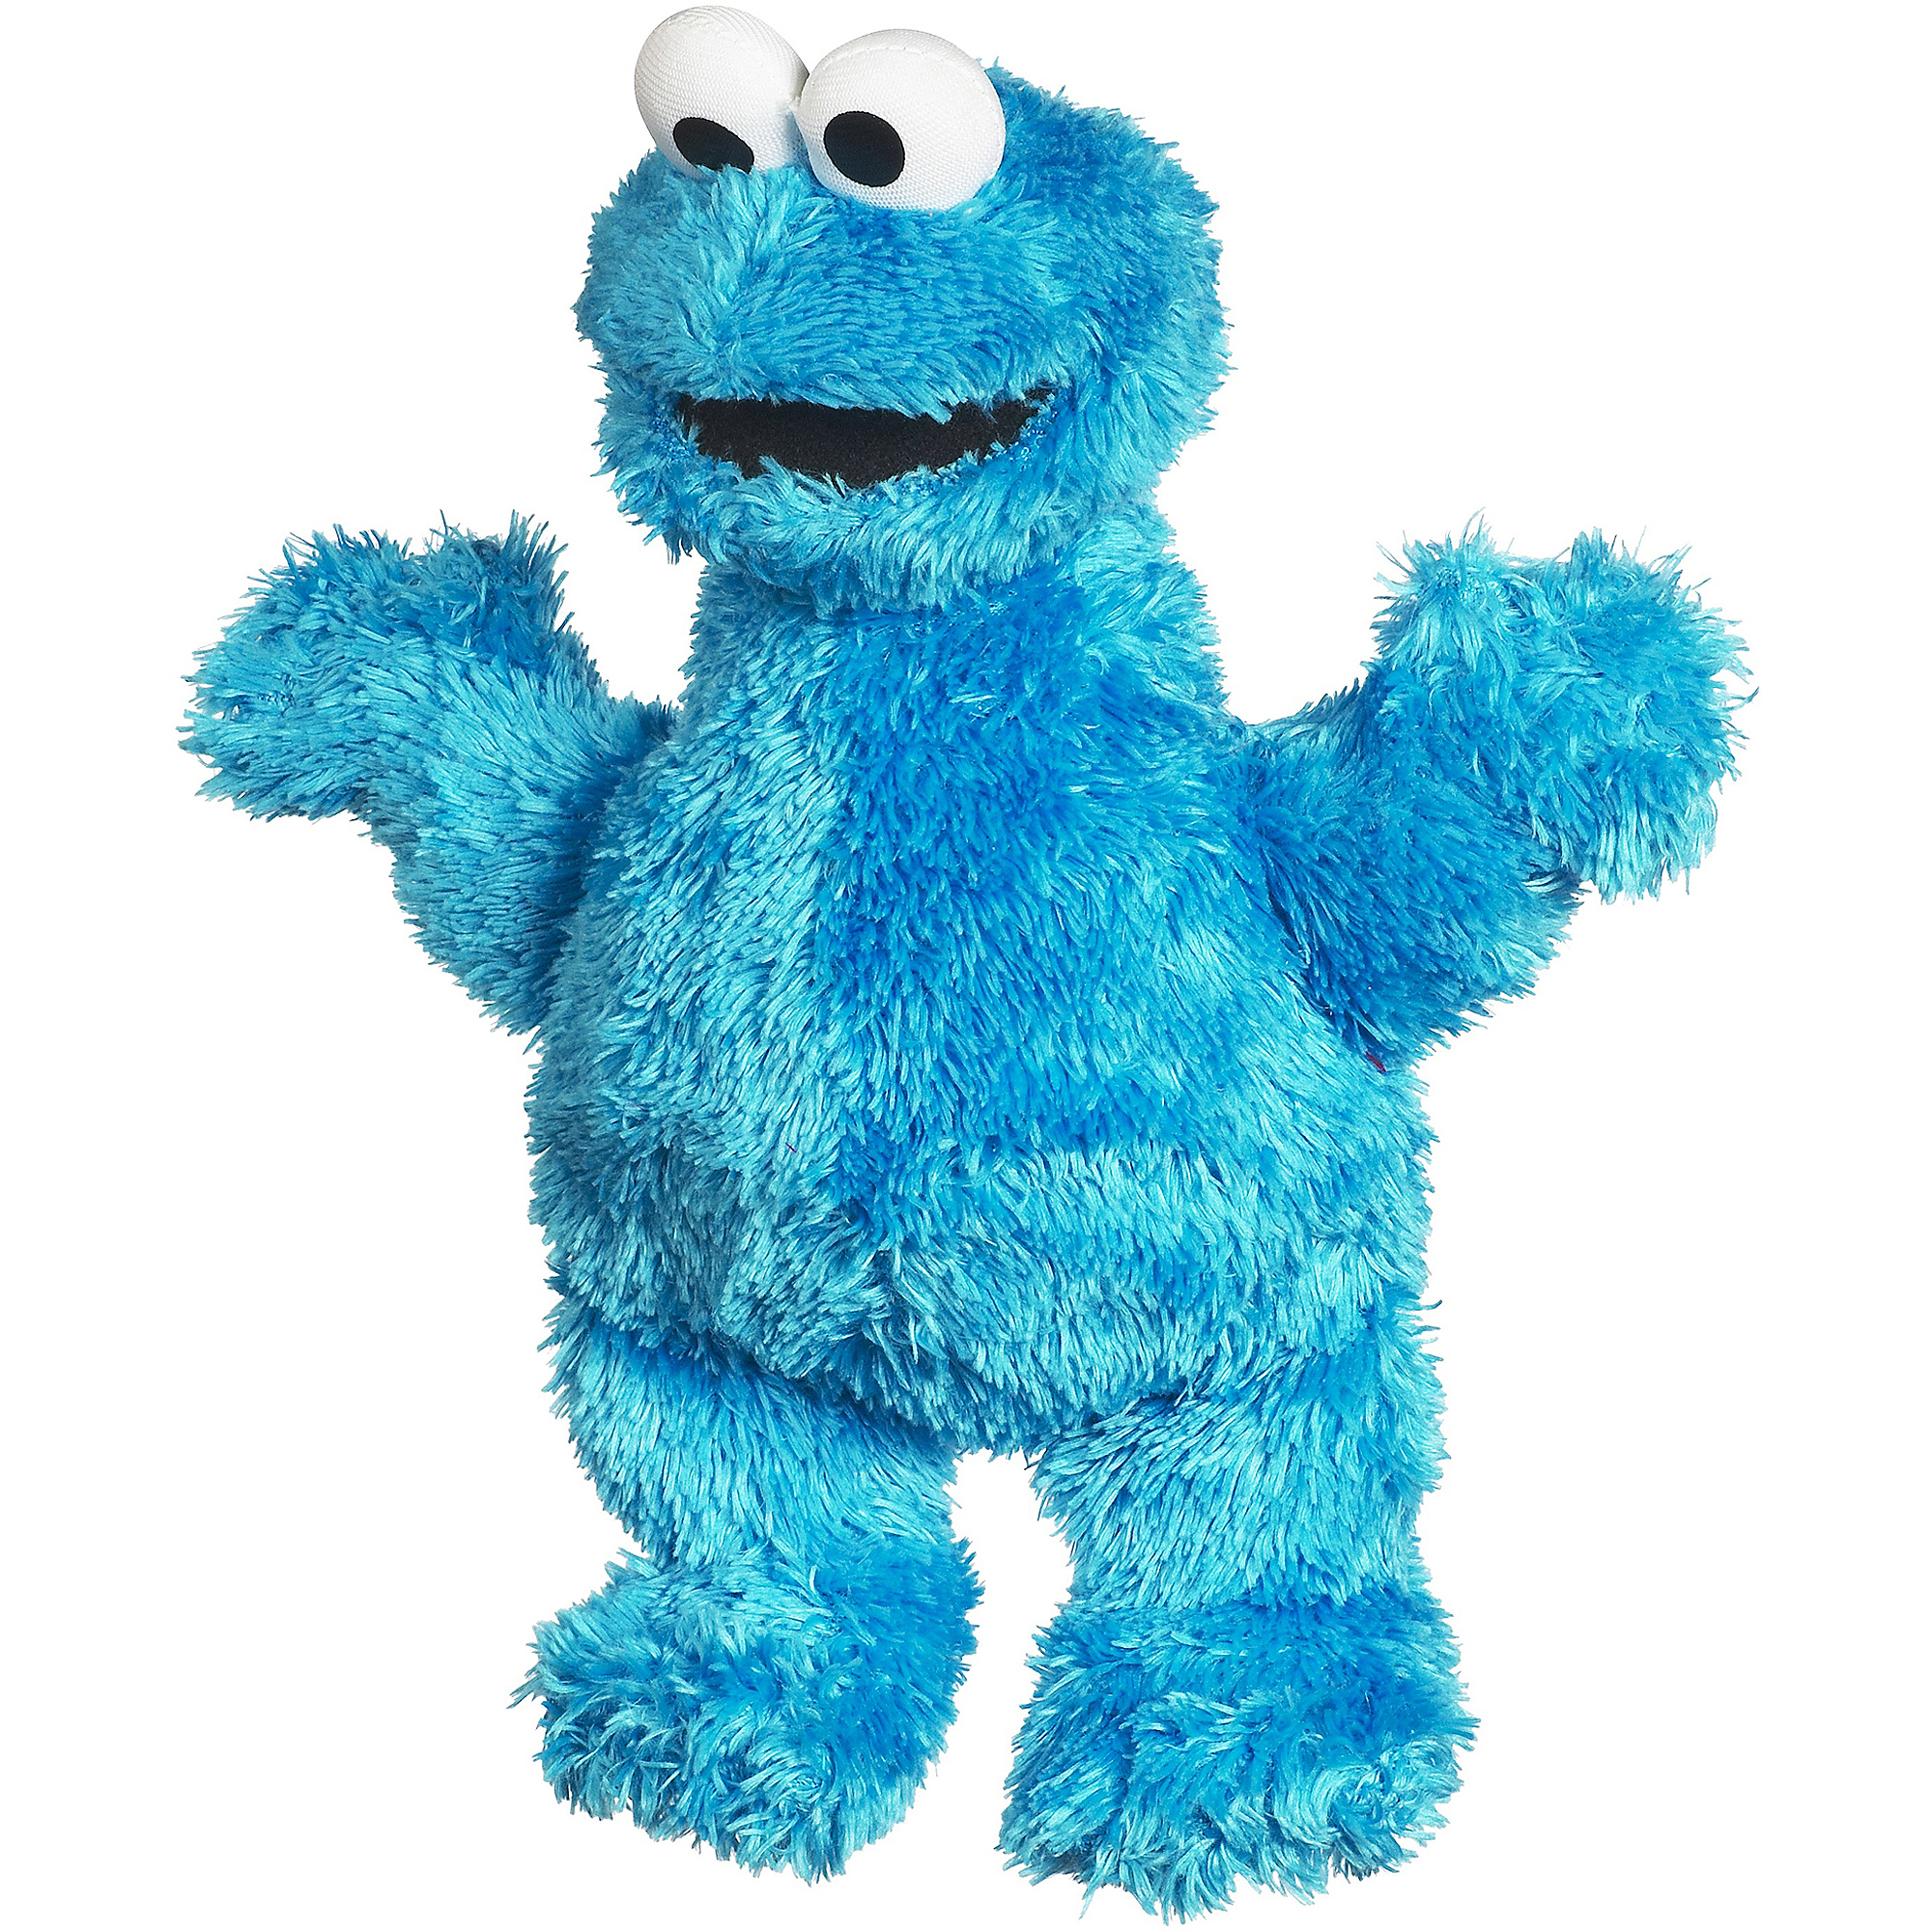 Playskool Sesame Street Sesame Street Pals, Cookie Monster